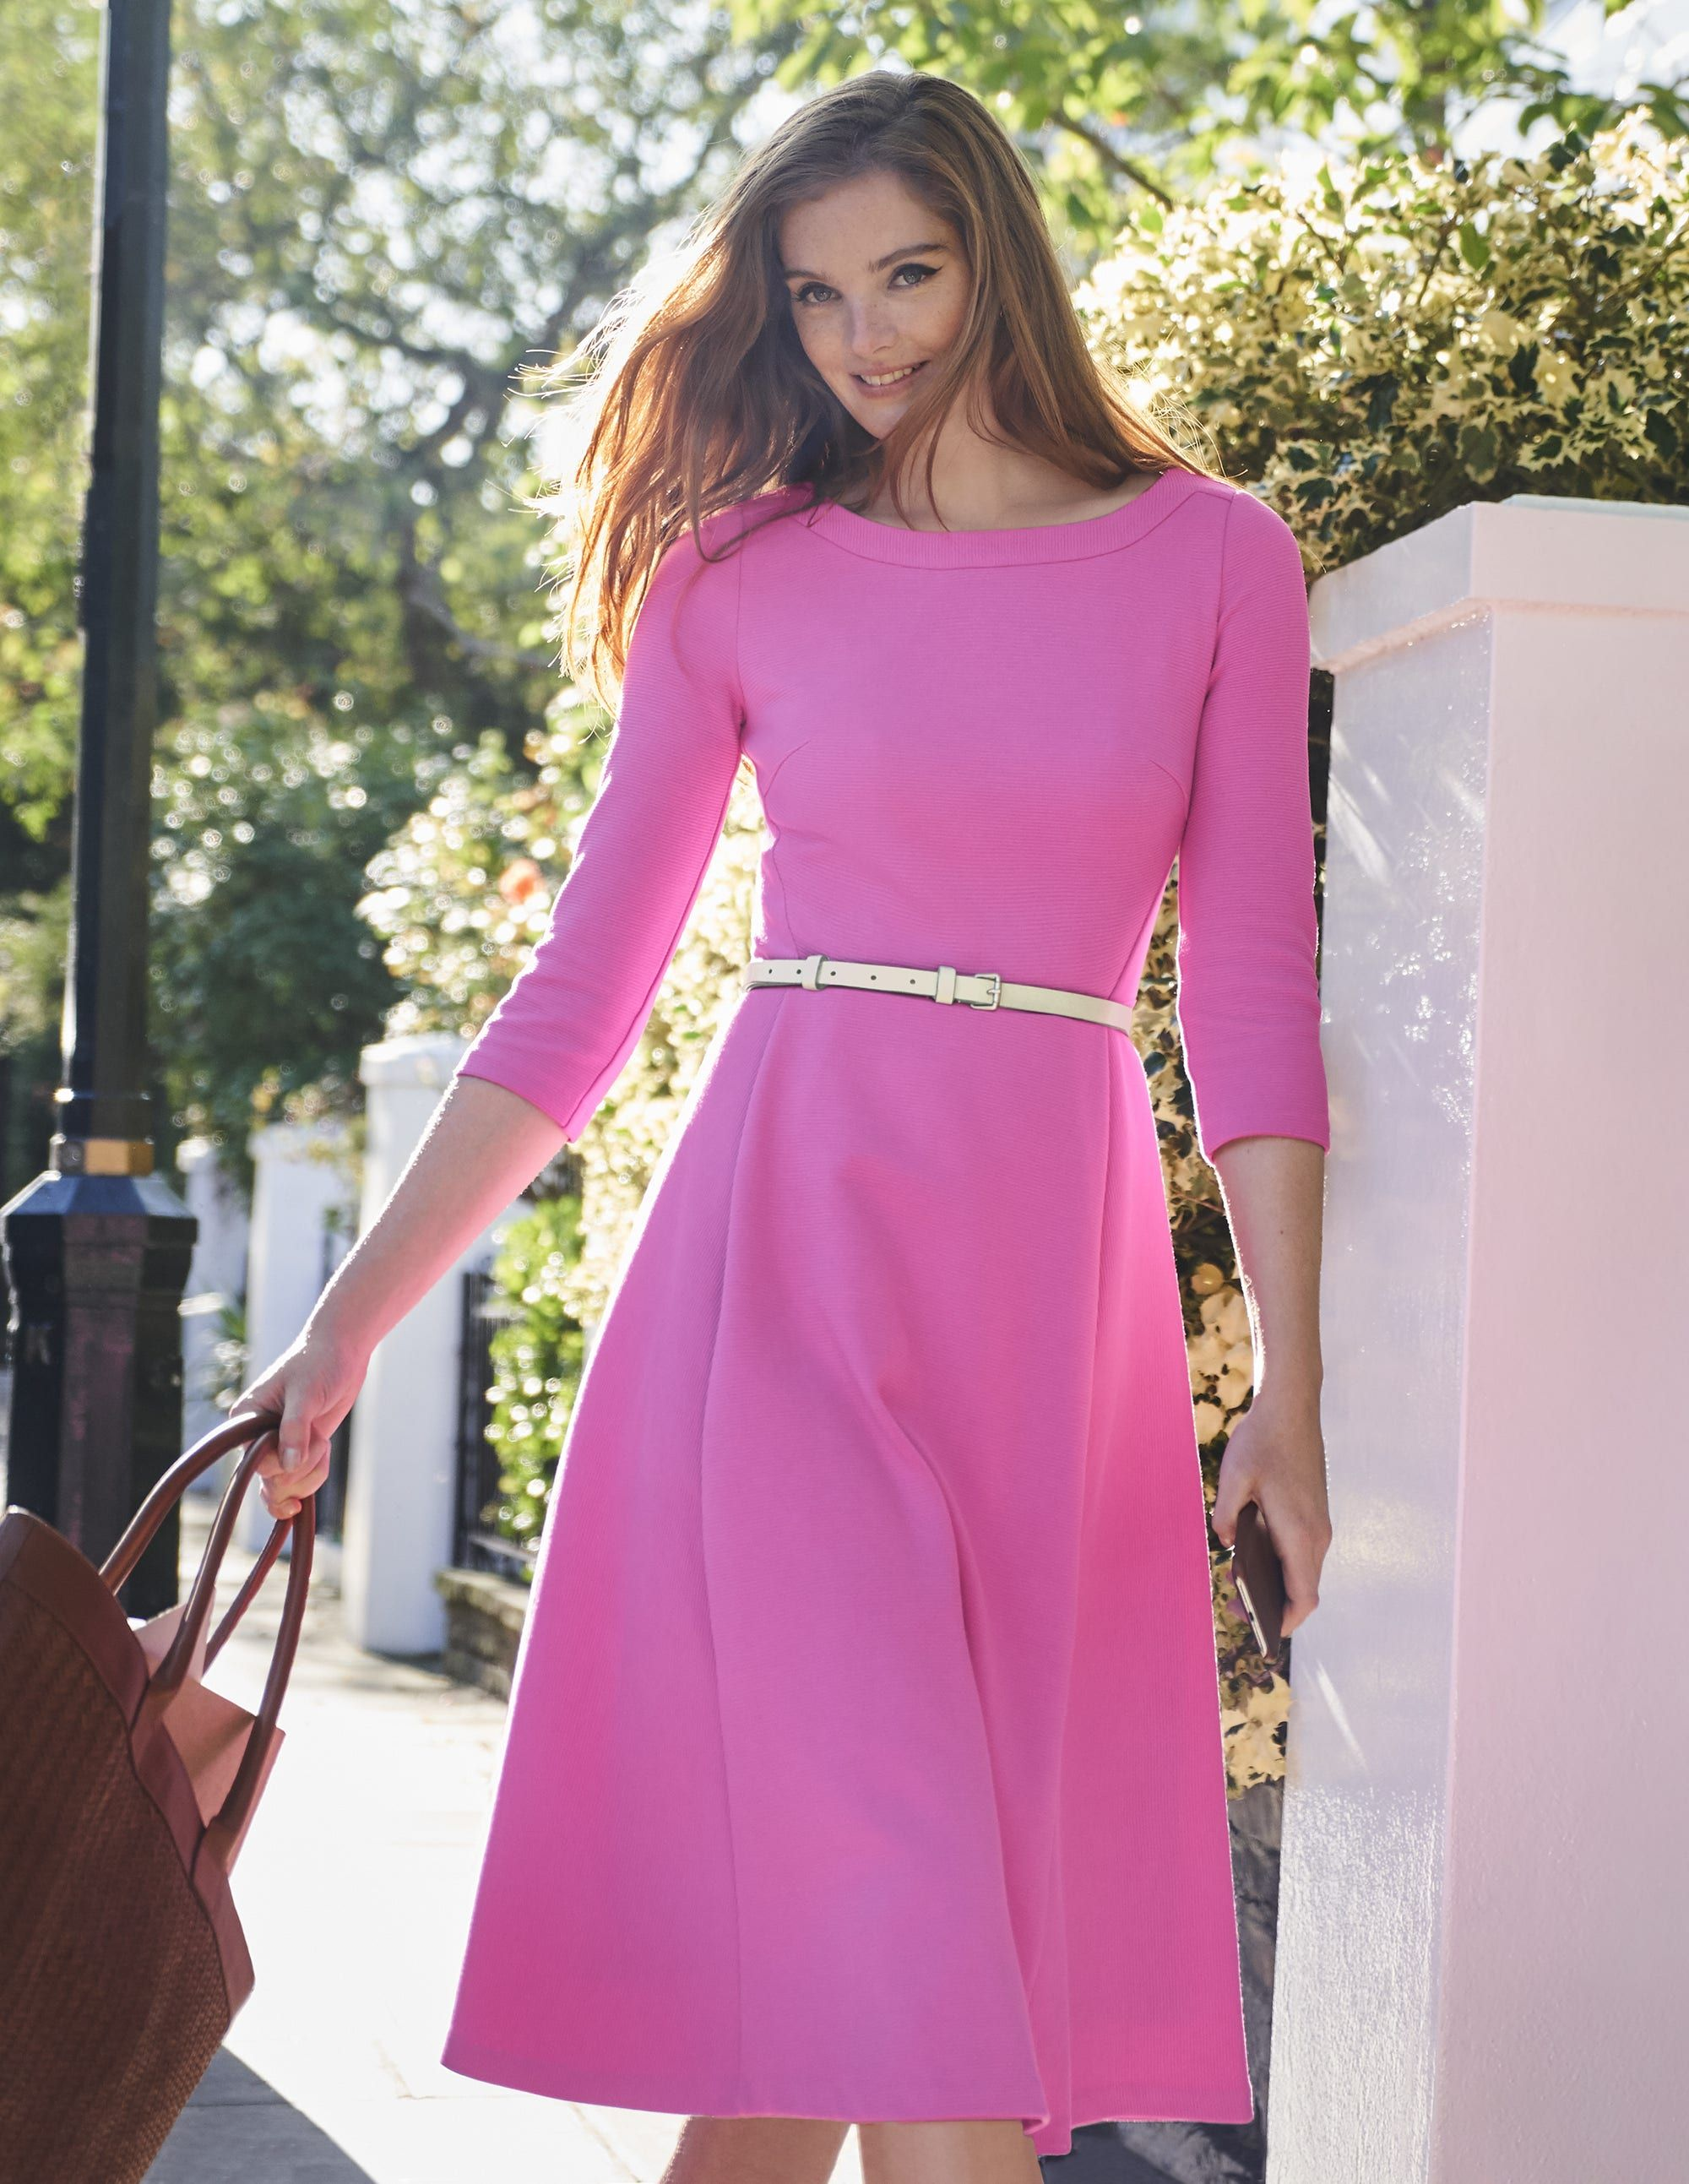 Boden has the perfect flattering dress for all occasions